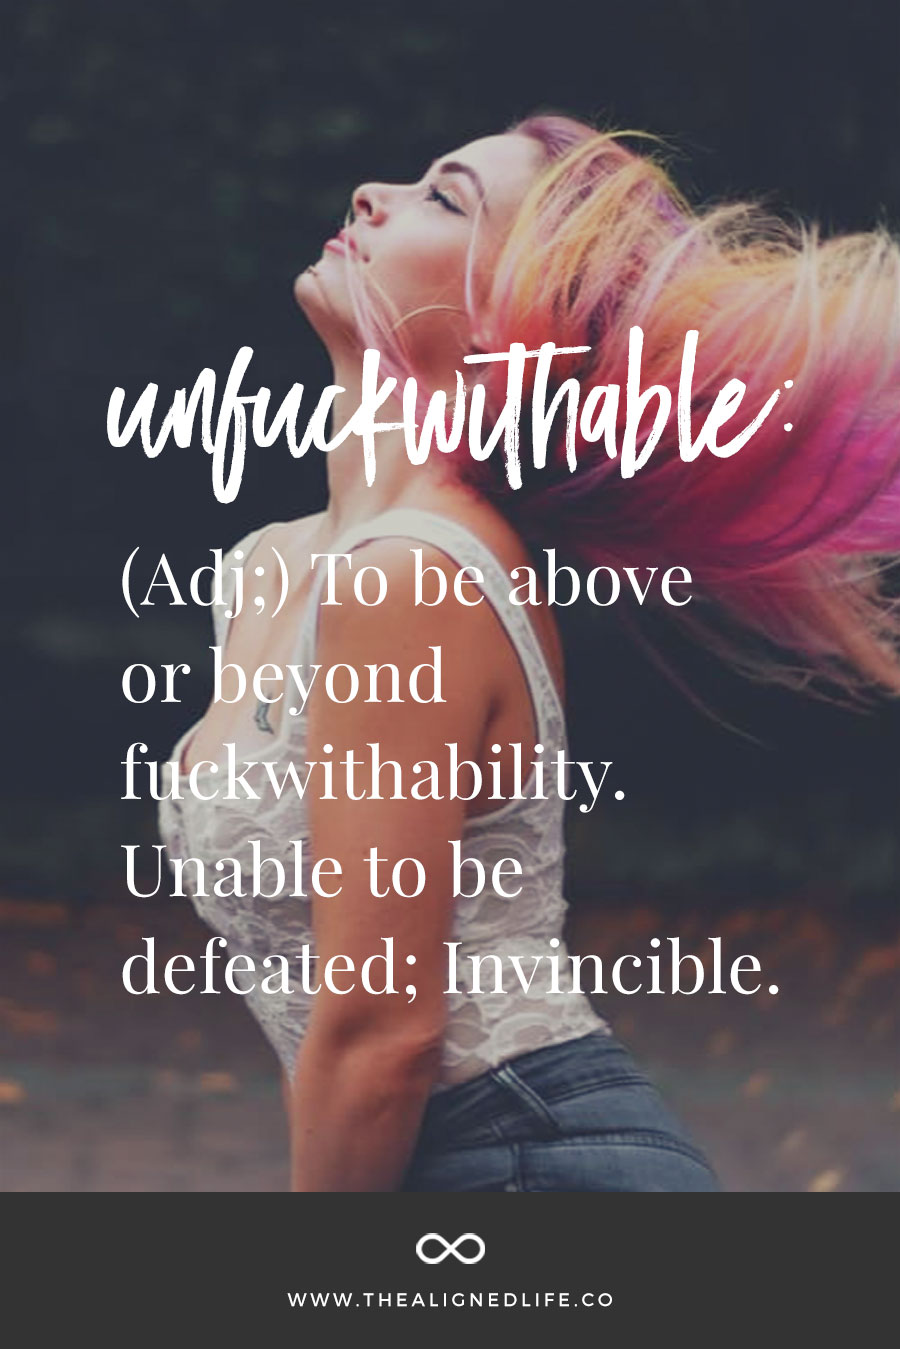 How To Become Unfuckwithable - to be above or beyond fuckwithability